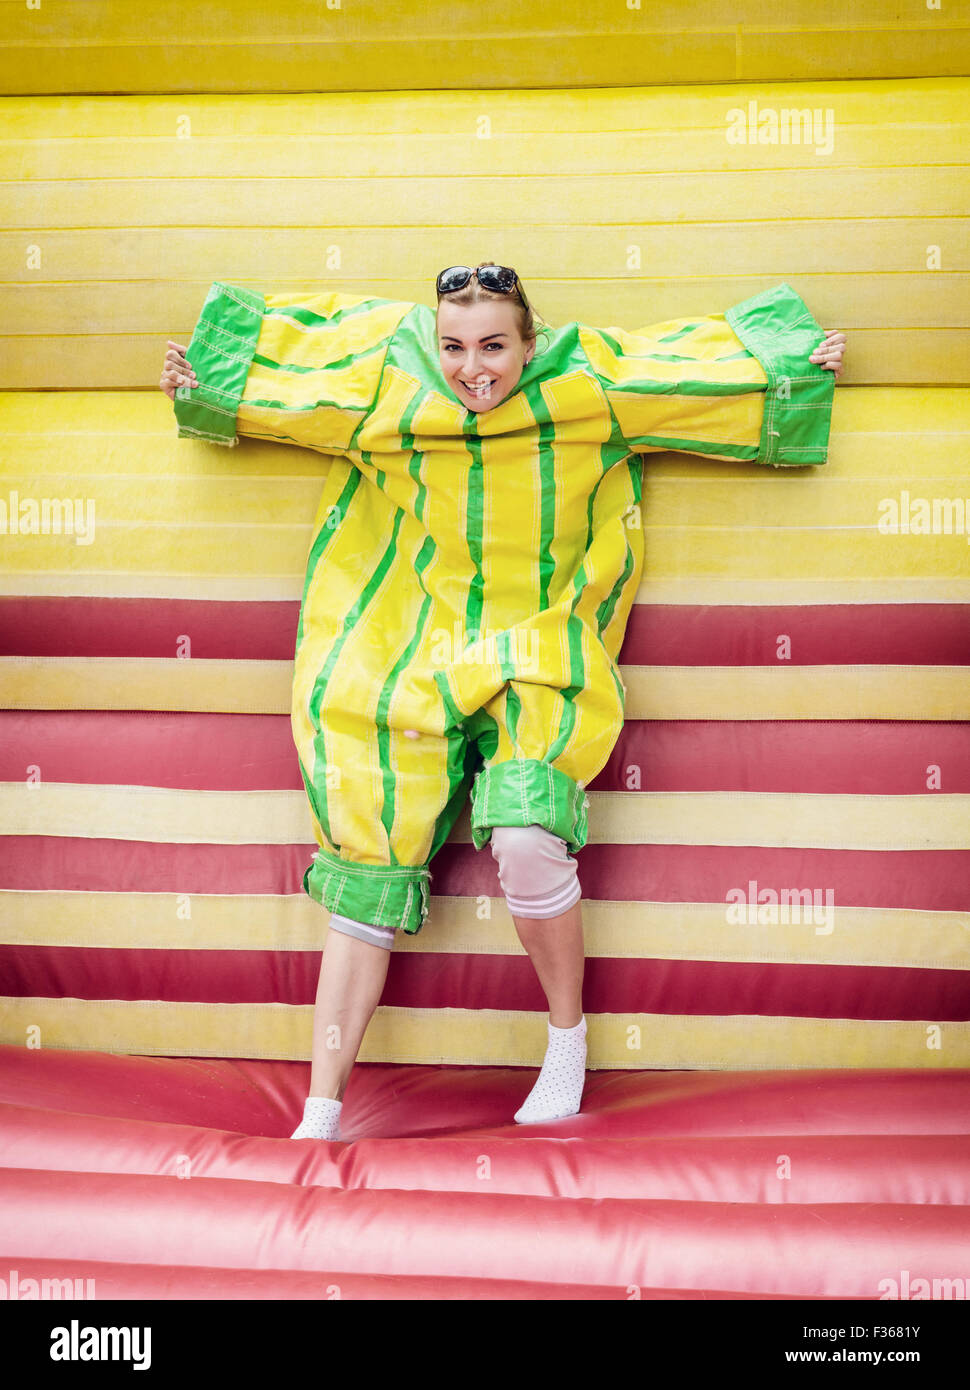 Young woman in plastic dress in a bouncy castle imitates a fly on velcro wall. Inflatable attraction. - Stock Image